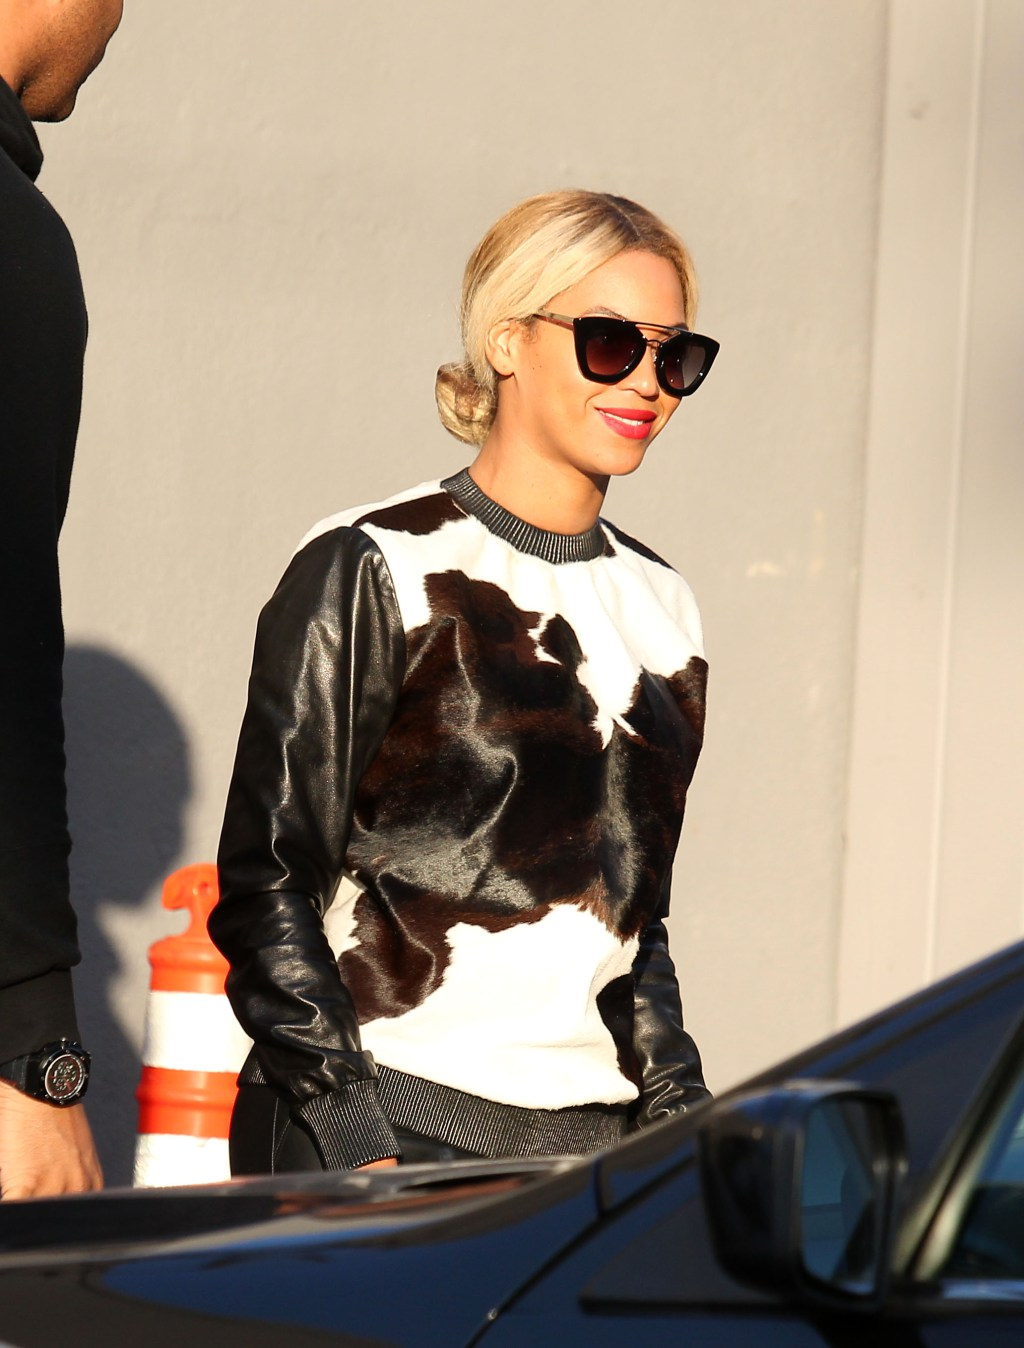 Last year Beyoncé was seen leaving a vegan restaurant in a sporty fur pullover that caused nationwide buzz